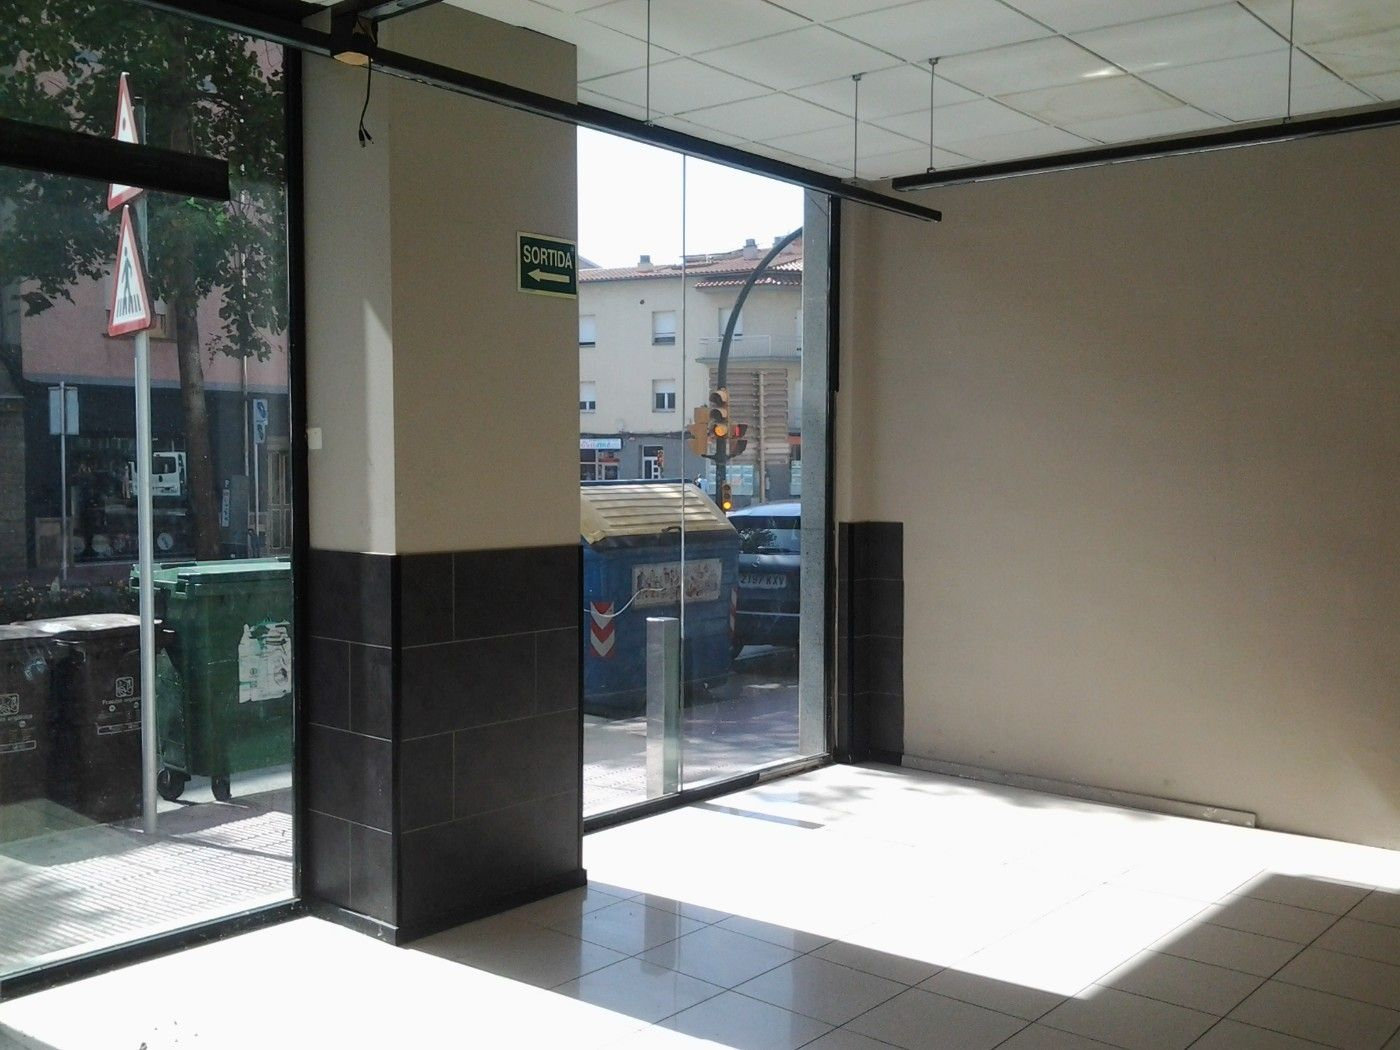 Location Local commercial à Avinguda roma, 114. Oportunidad